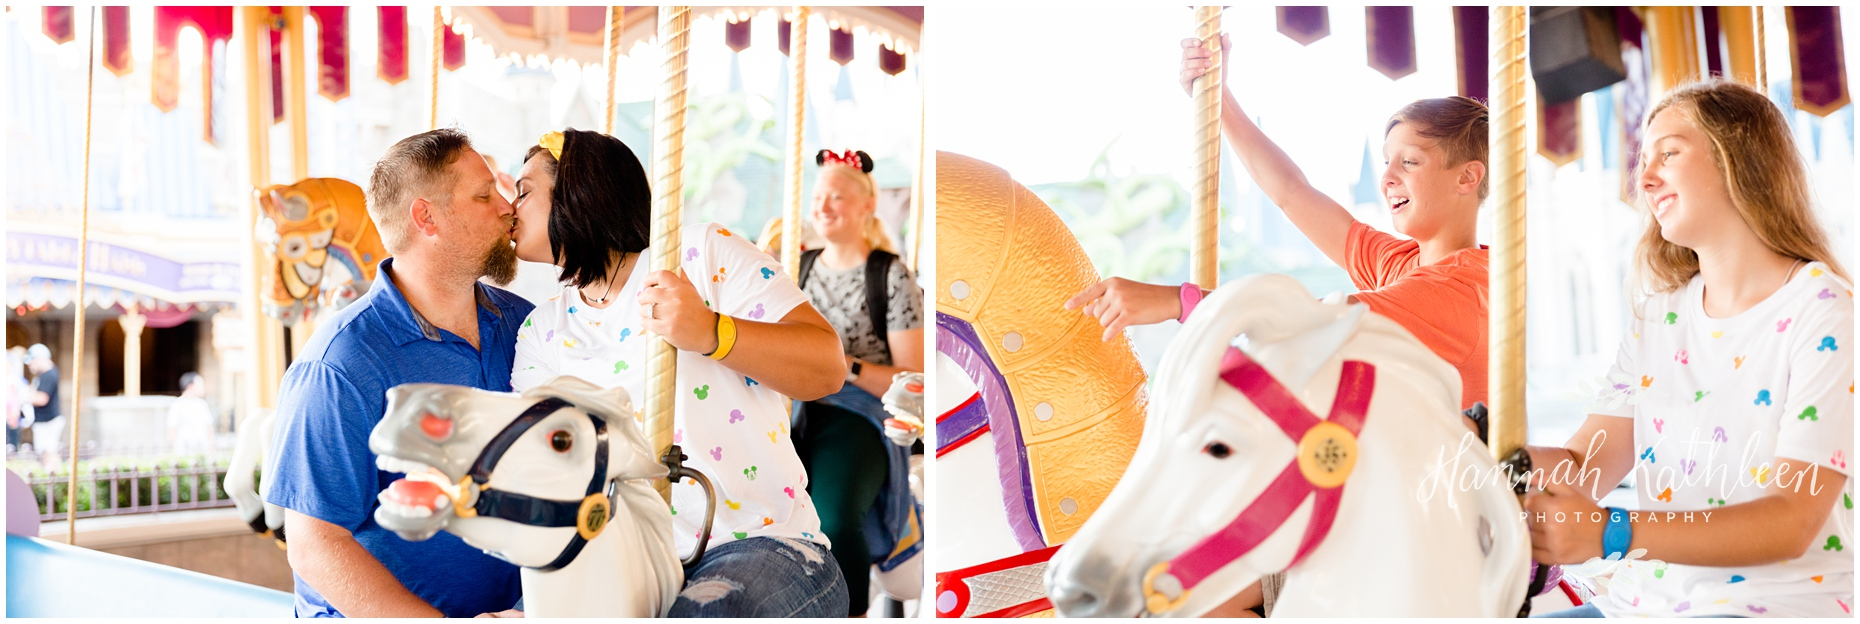 shaw_family_disney_park_photographer_carousel_children